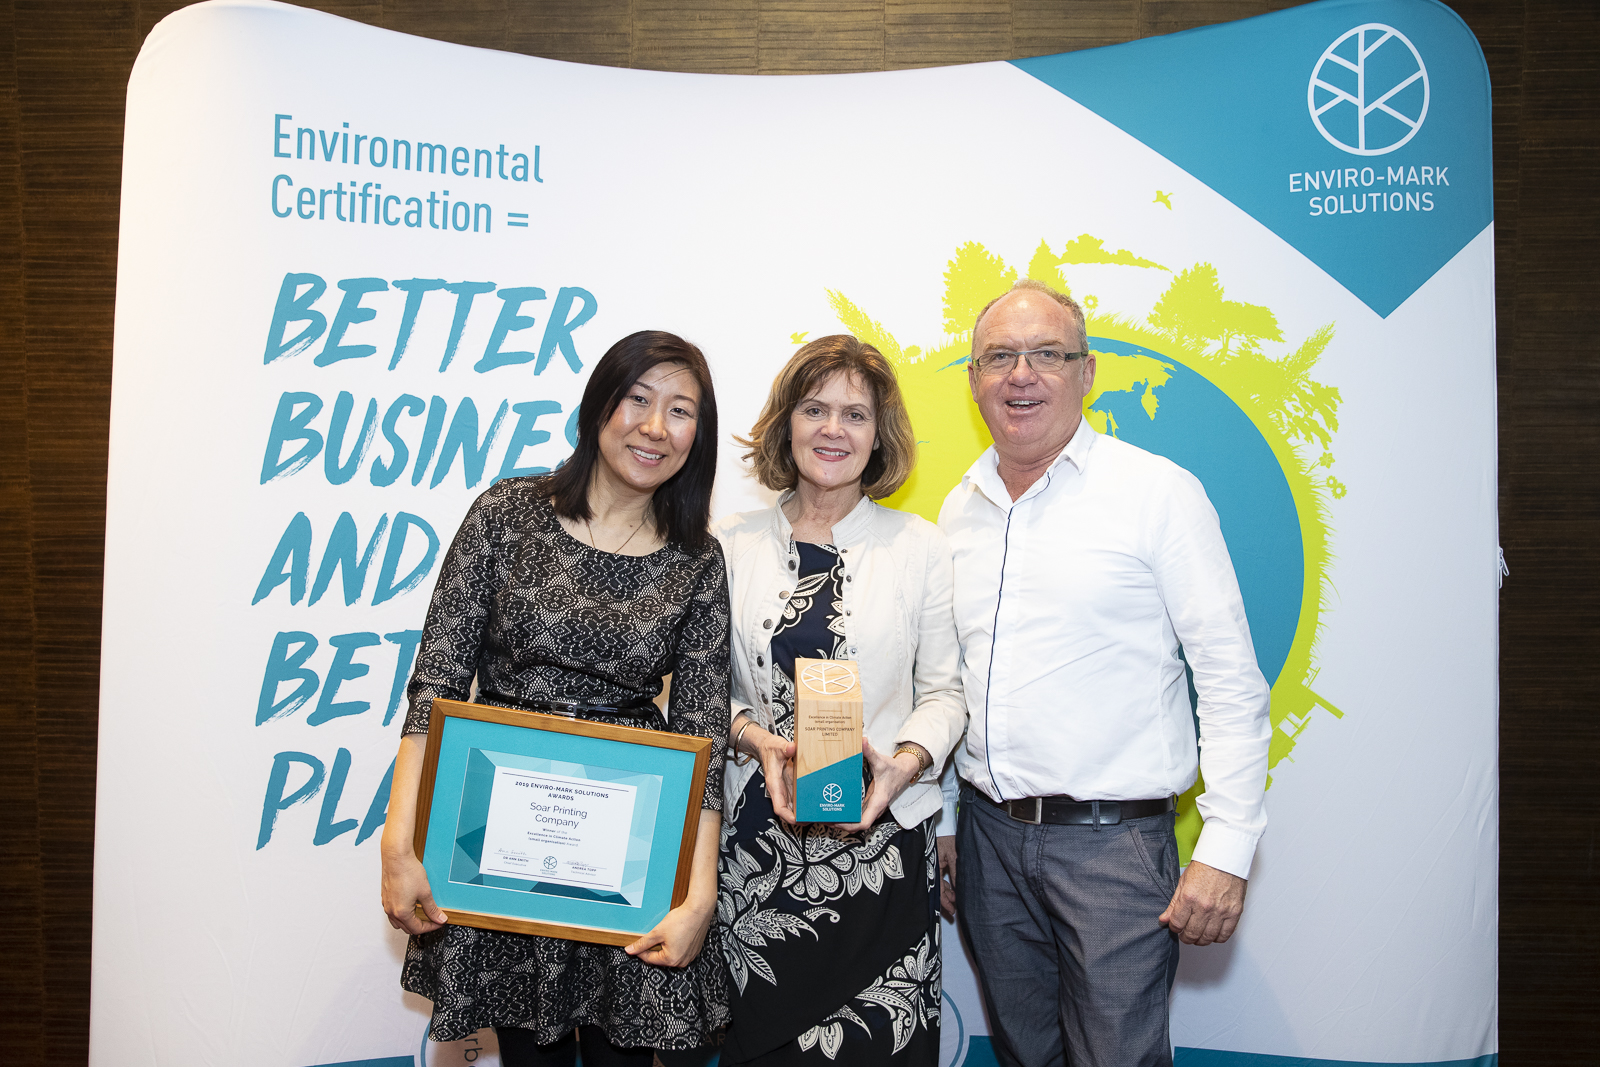 Soar Printing Company | Winner of Excellence in Climate Action Award